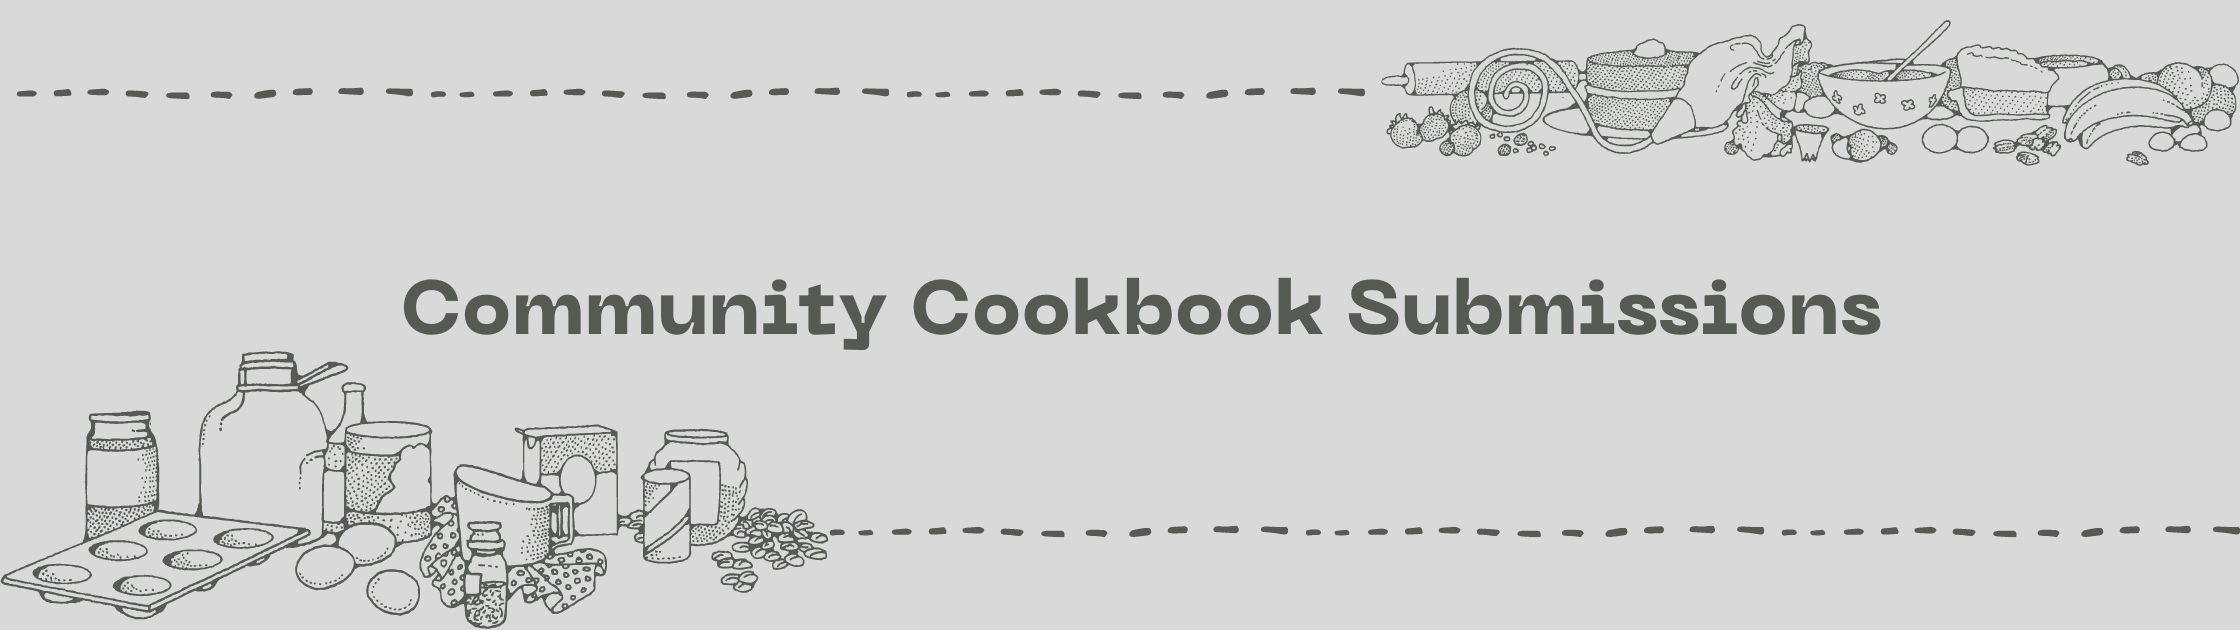 community cookbook submissions cover image